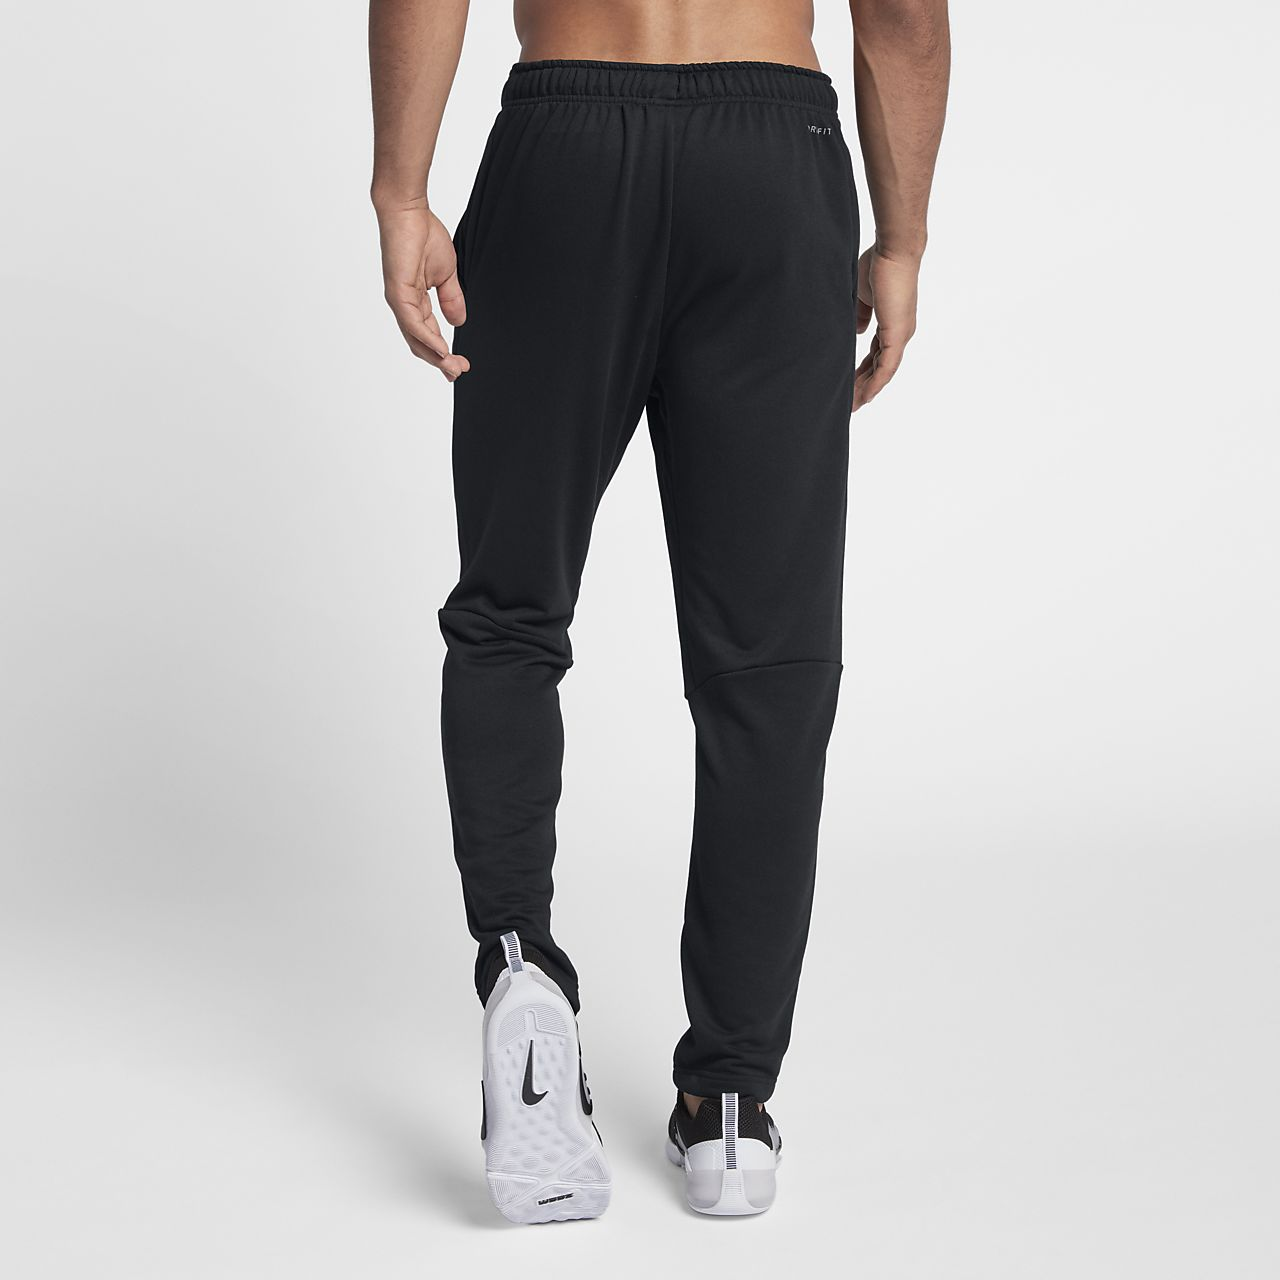 fe46346f6681 Nike Dri-FIT Men s Training Pants. Nike.com